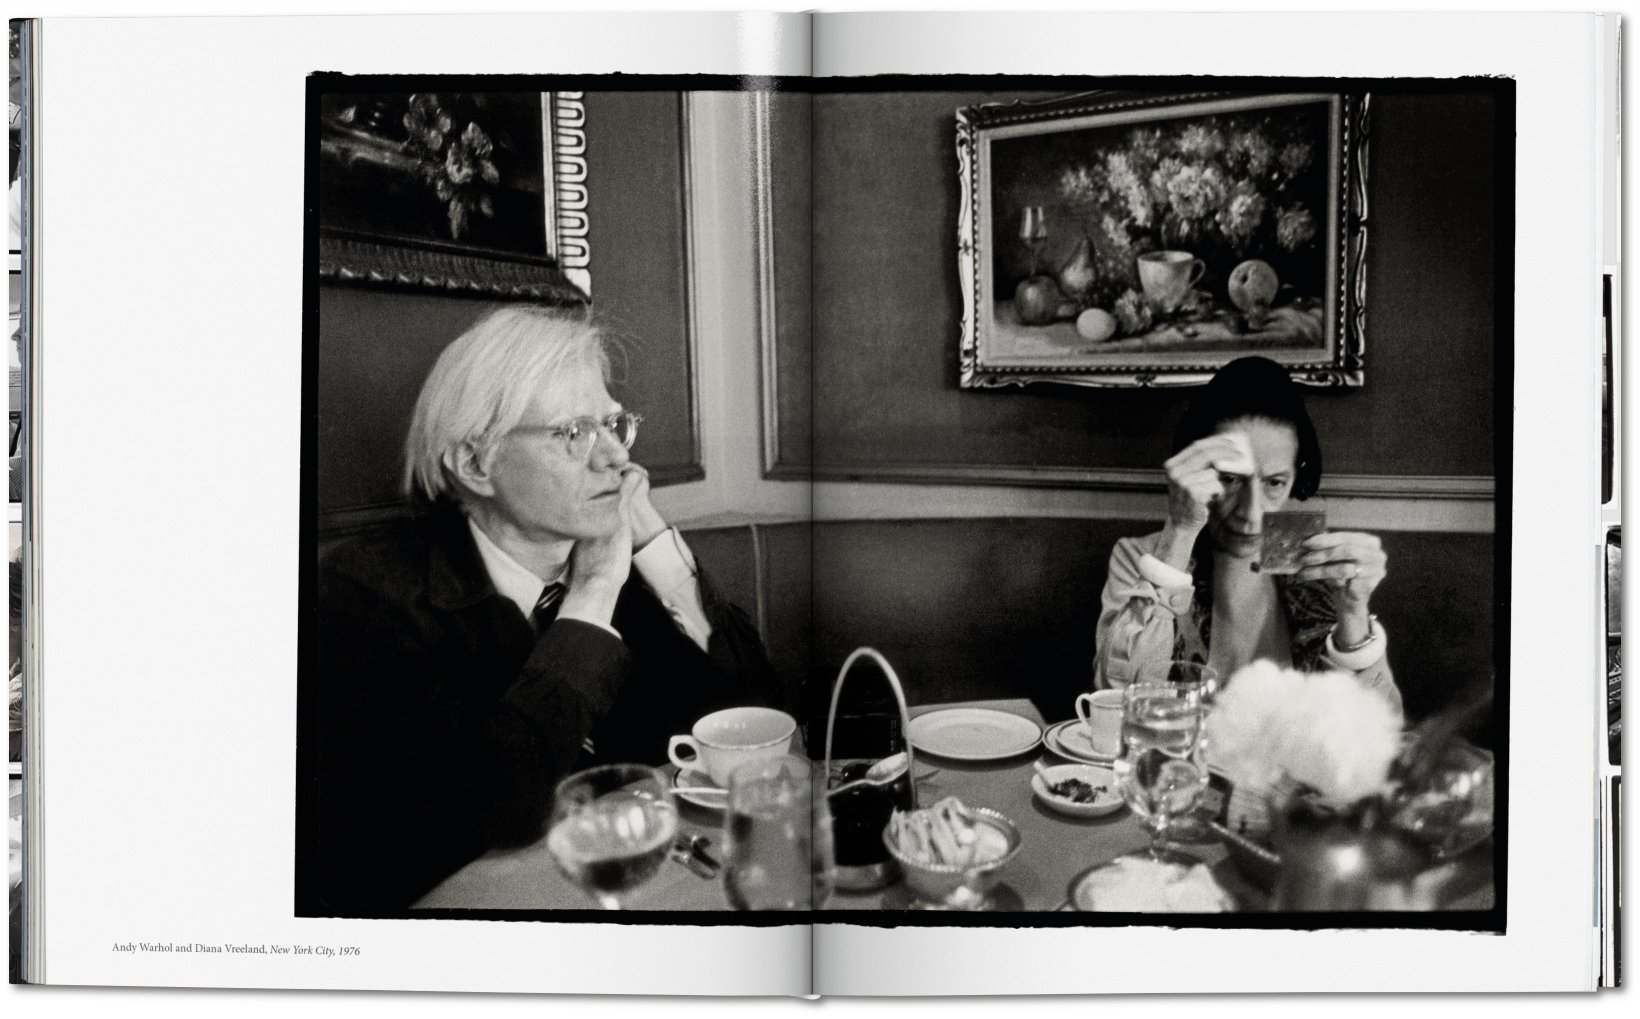 Andy Warhol and Diana Vreeland, New York City, 1976 | aus: Annie Leibovitz: The Early Years, 1970–1983